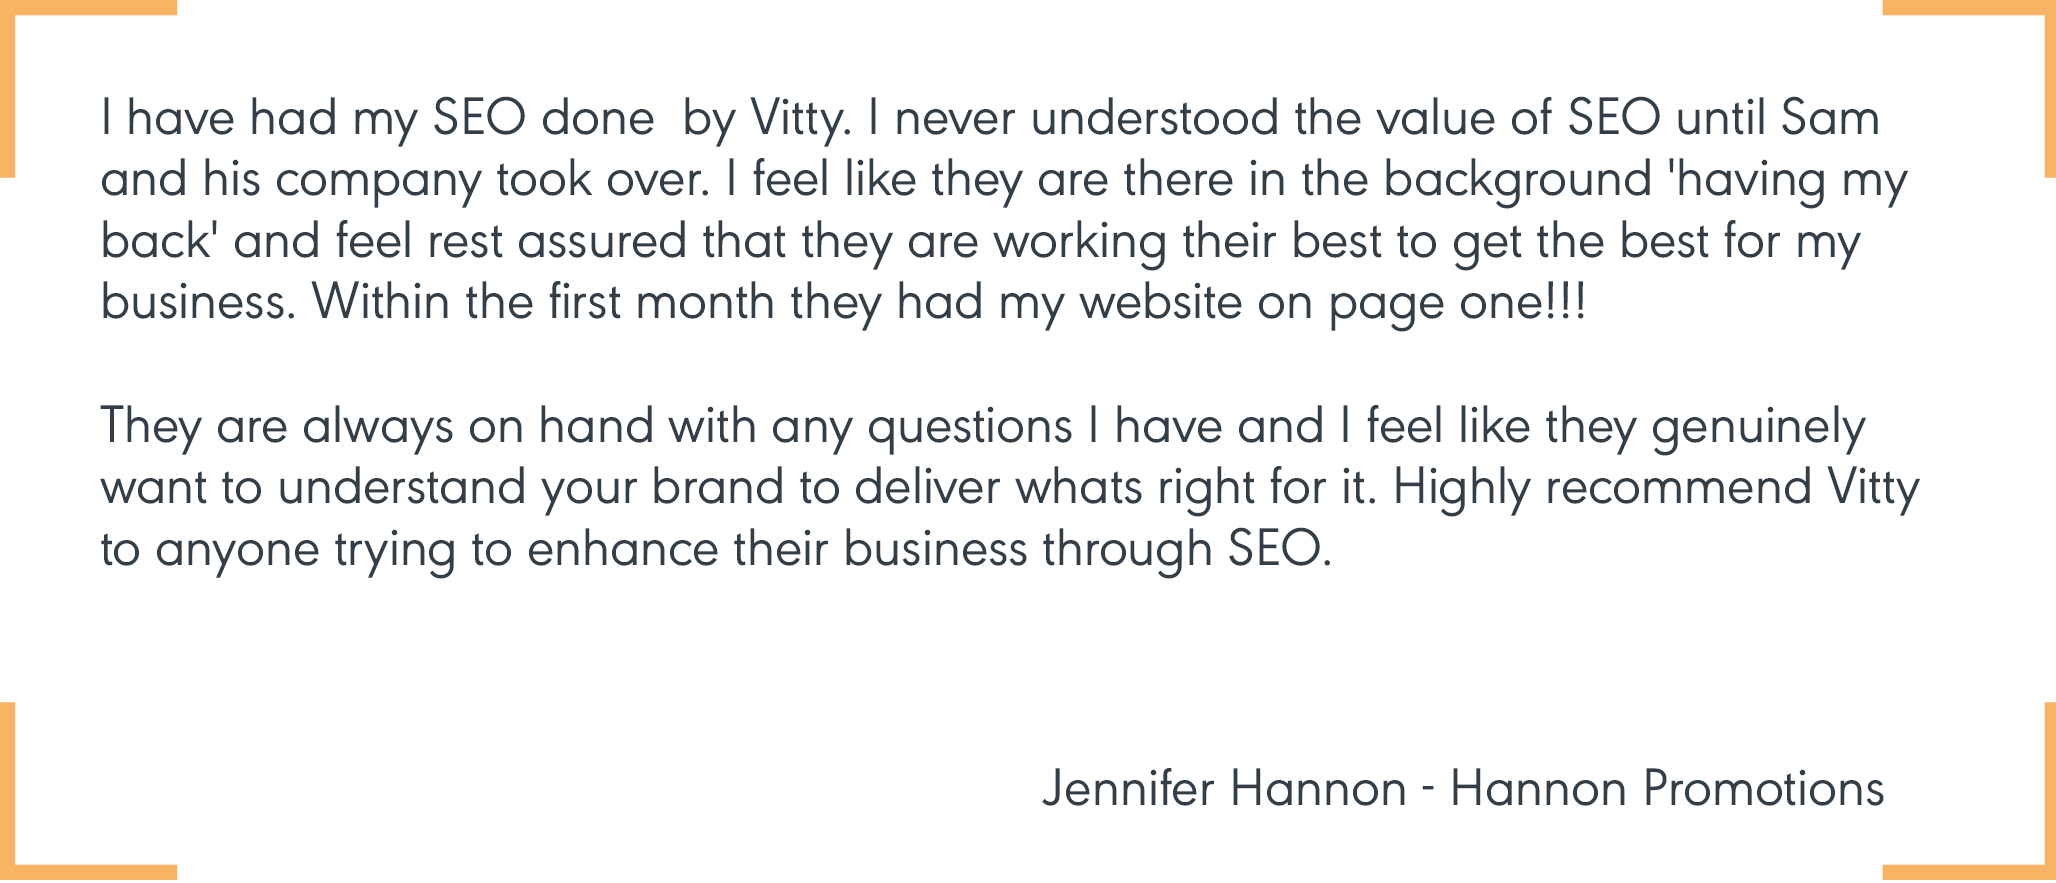 Jennifer from Hannon Promotions